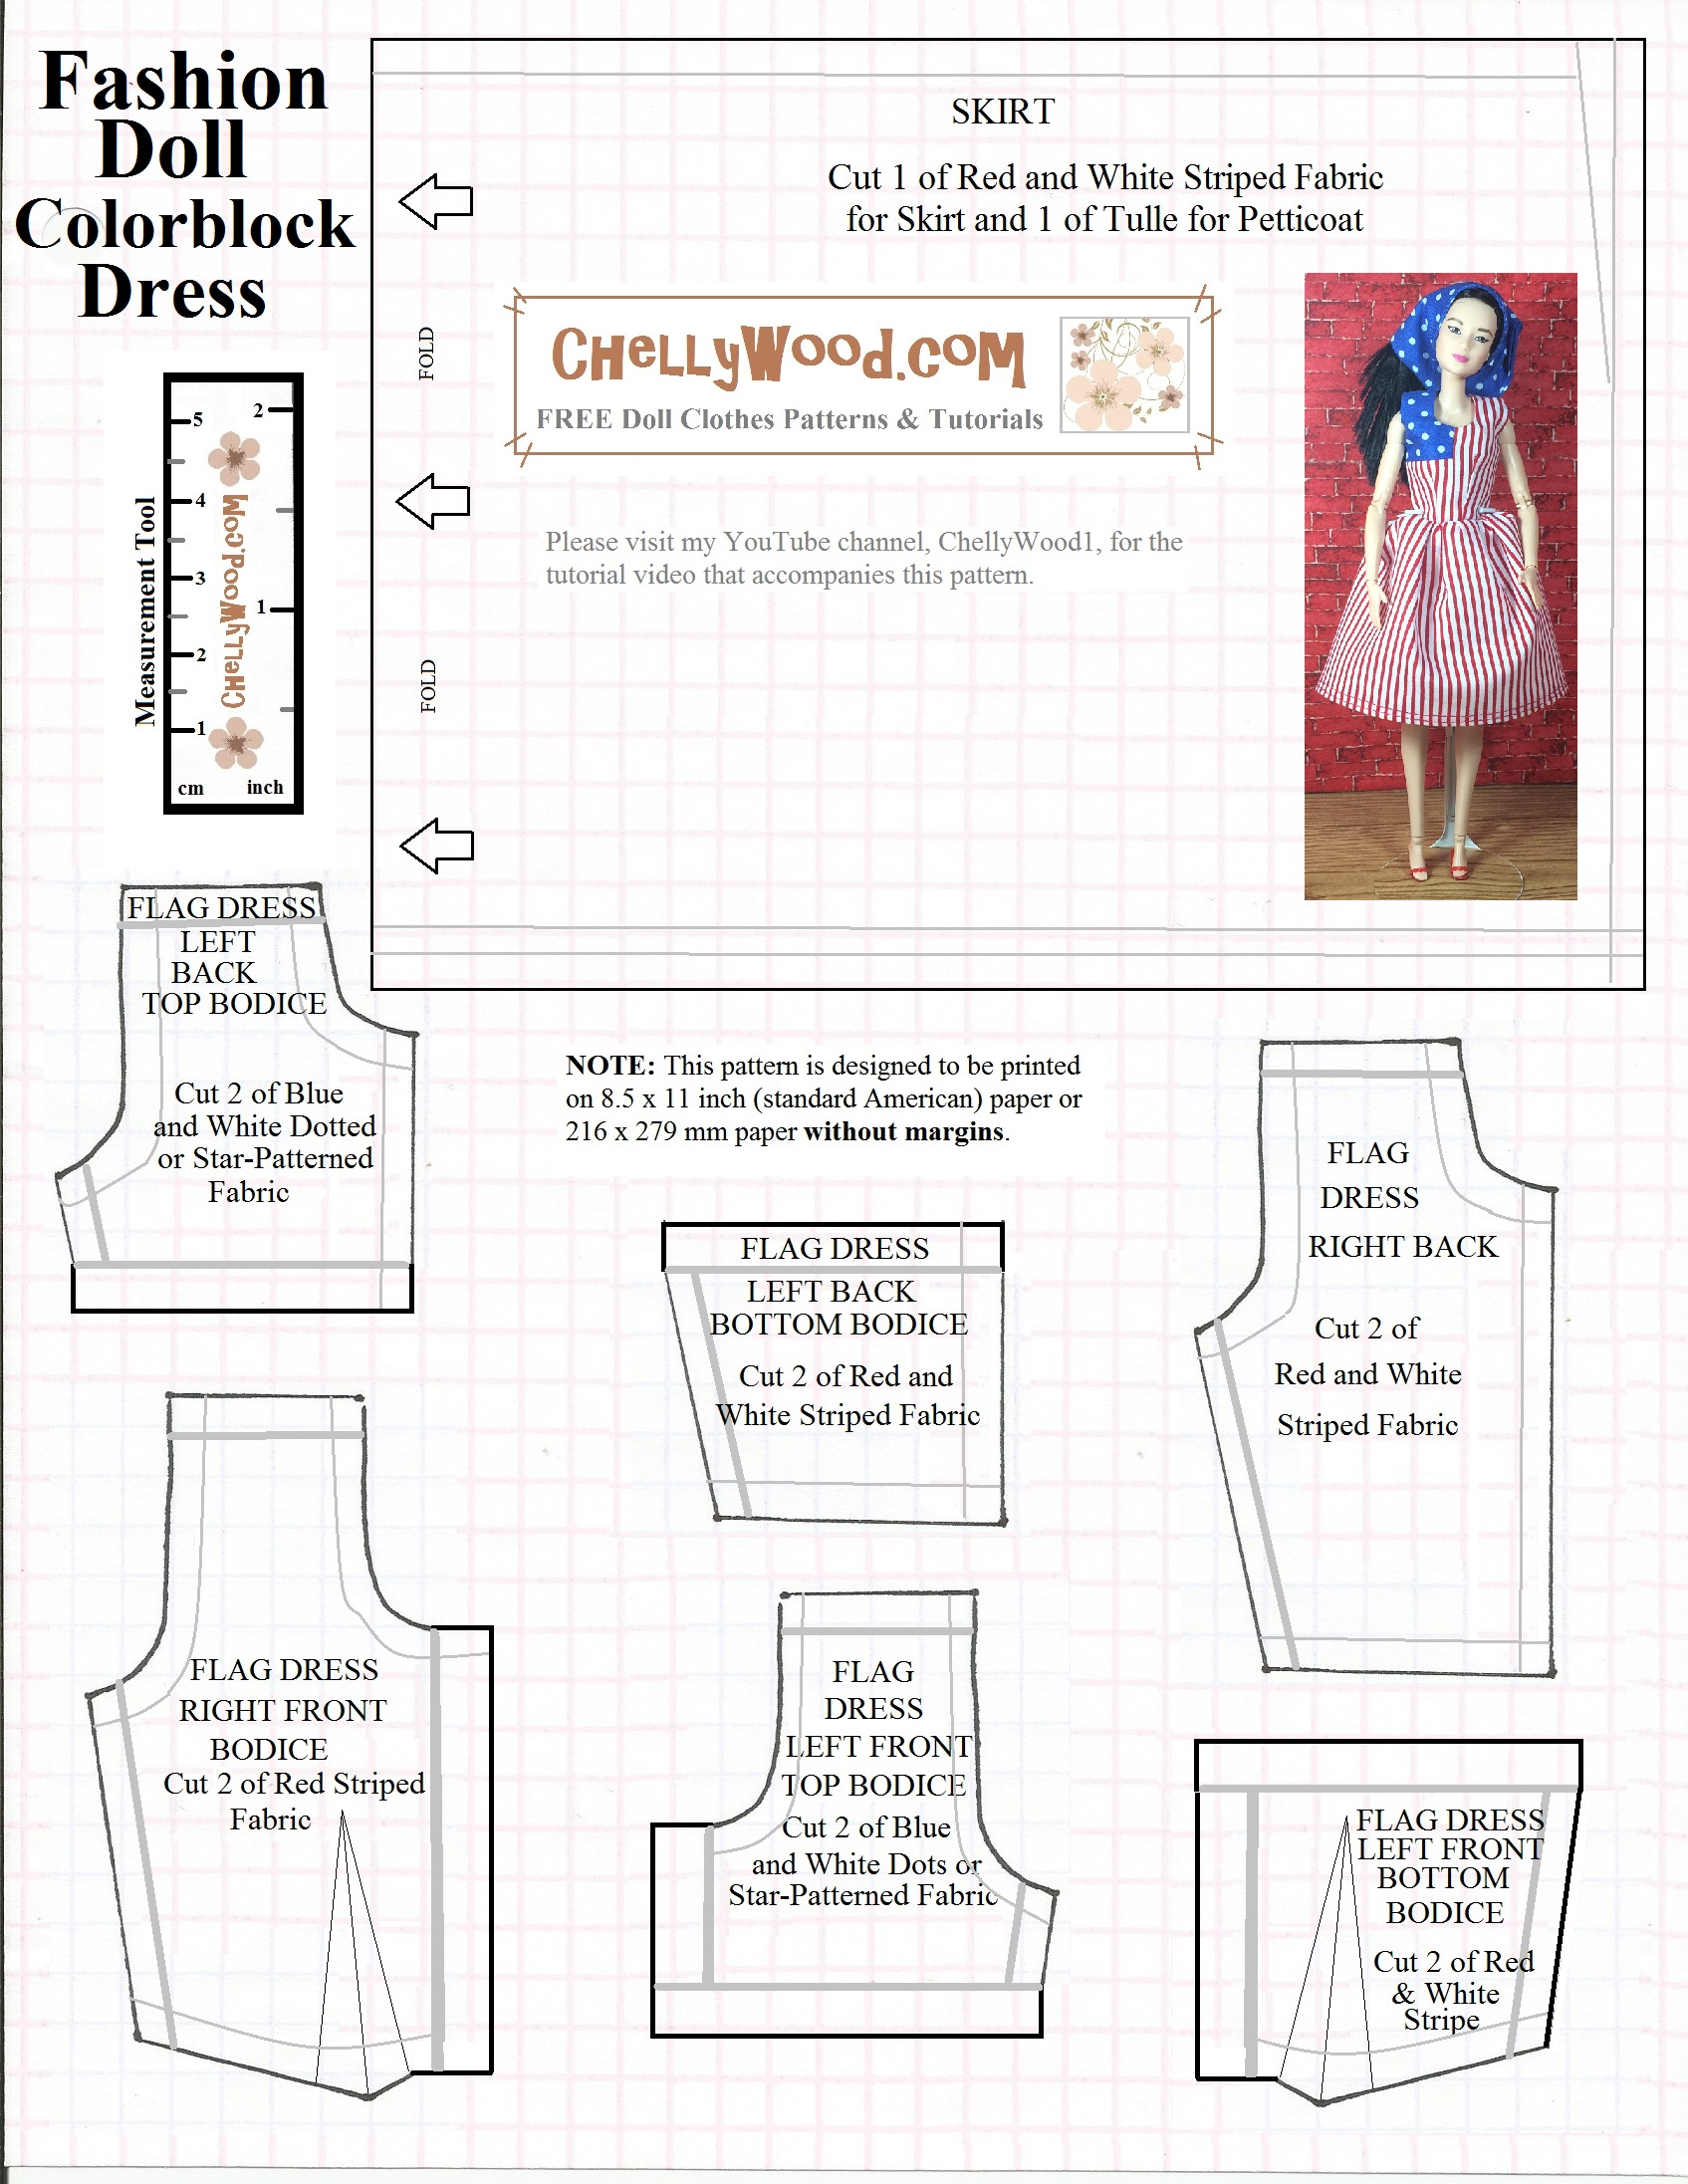 Free printable pattern for colorblockdress for dolls this link jeuxipadfo Gallery